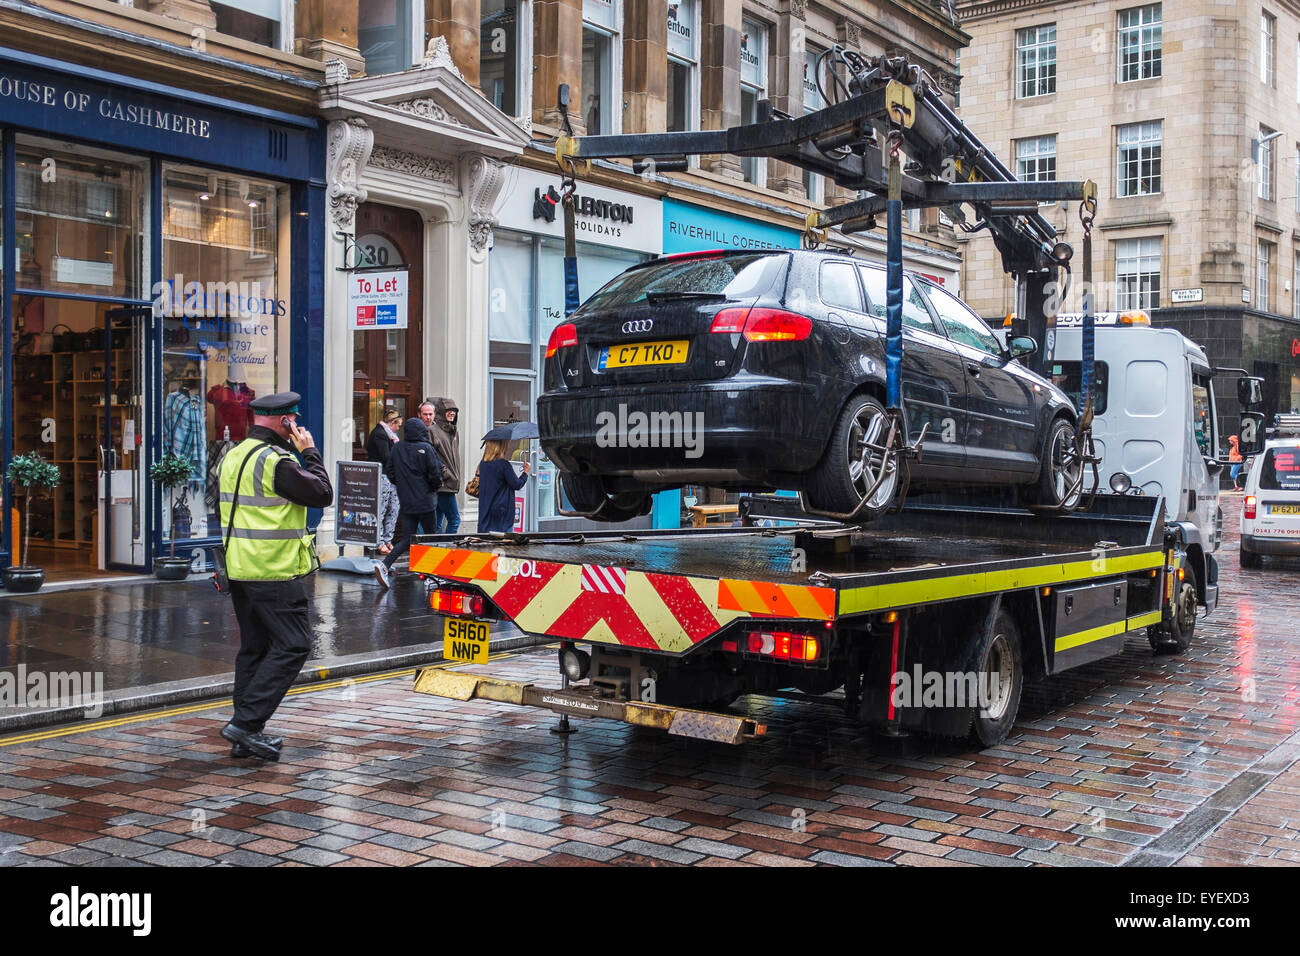 Traffic warden authorising the removal of a car parked illegally, Glasgow, Scotland, UK - Stock Image